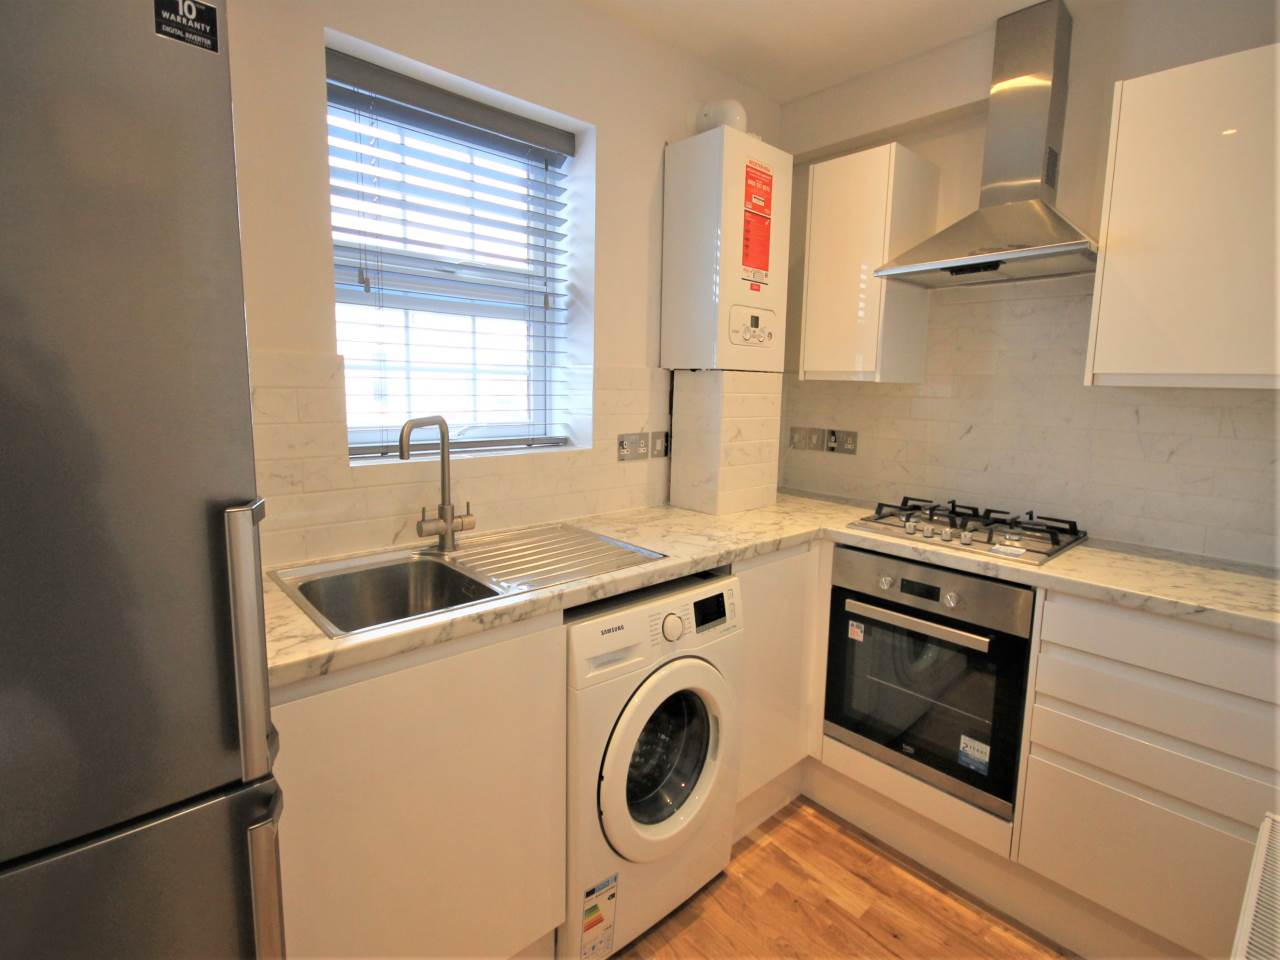 1 bed studio-flat to rent in Chadwell Heath, RM6